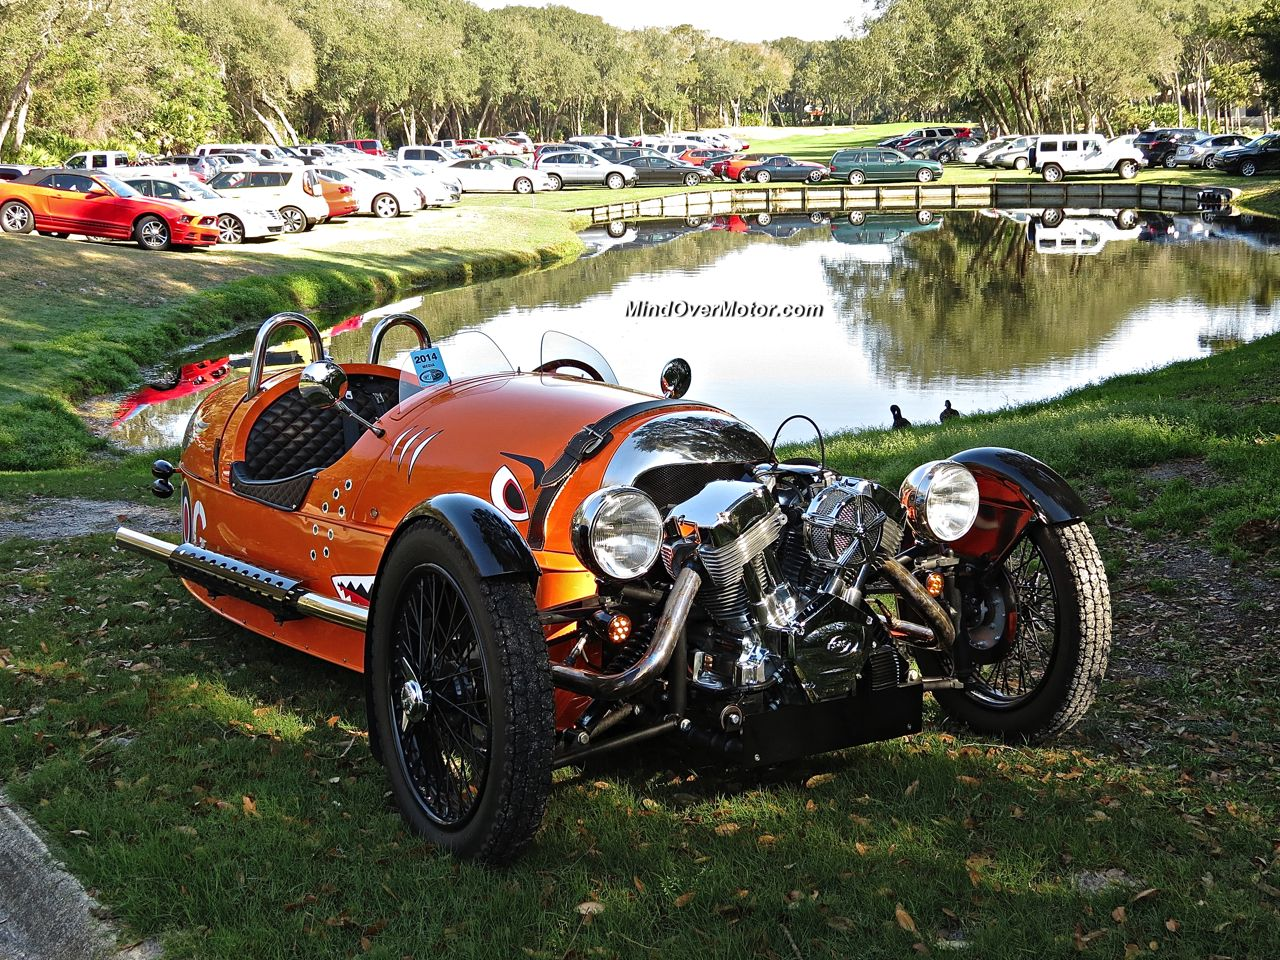 morgan 3 wheeler spotted at amelia island mind over motor. Black Bedroom Furniture Sets. Home Design Ideas